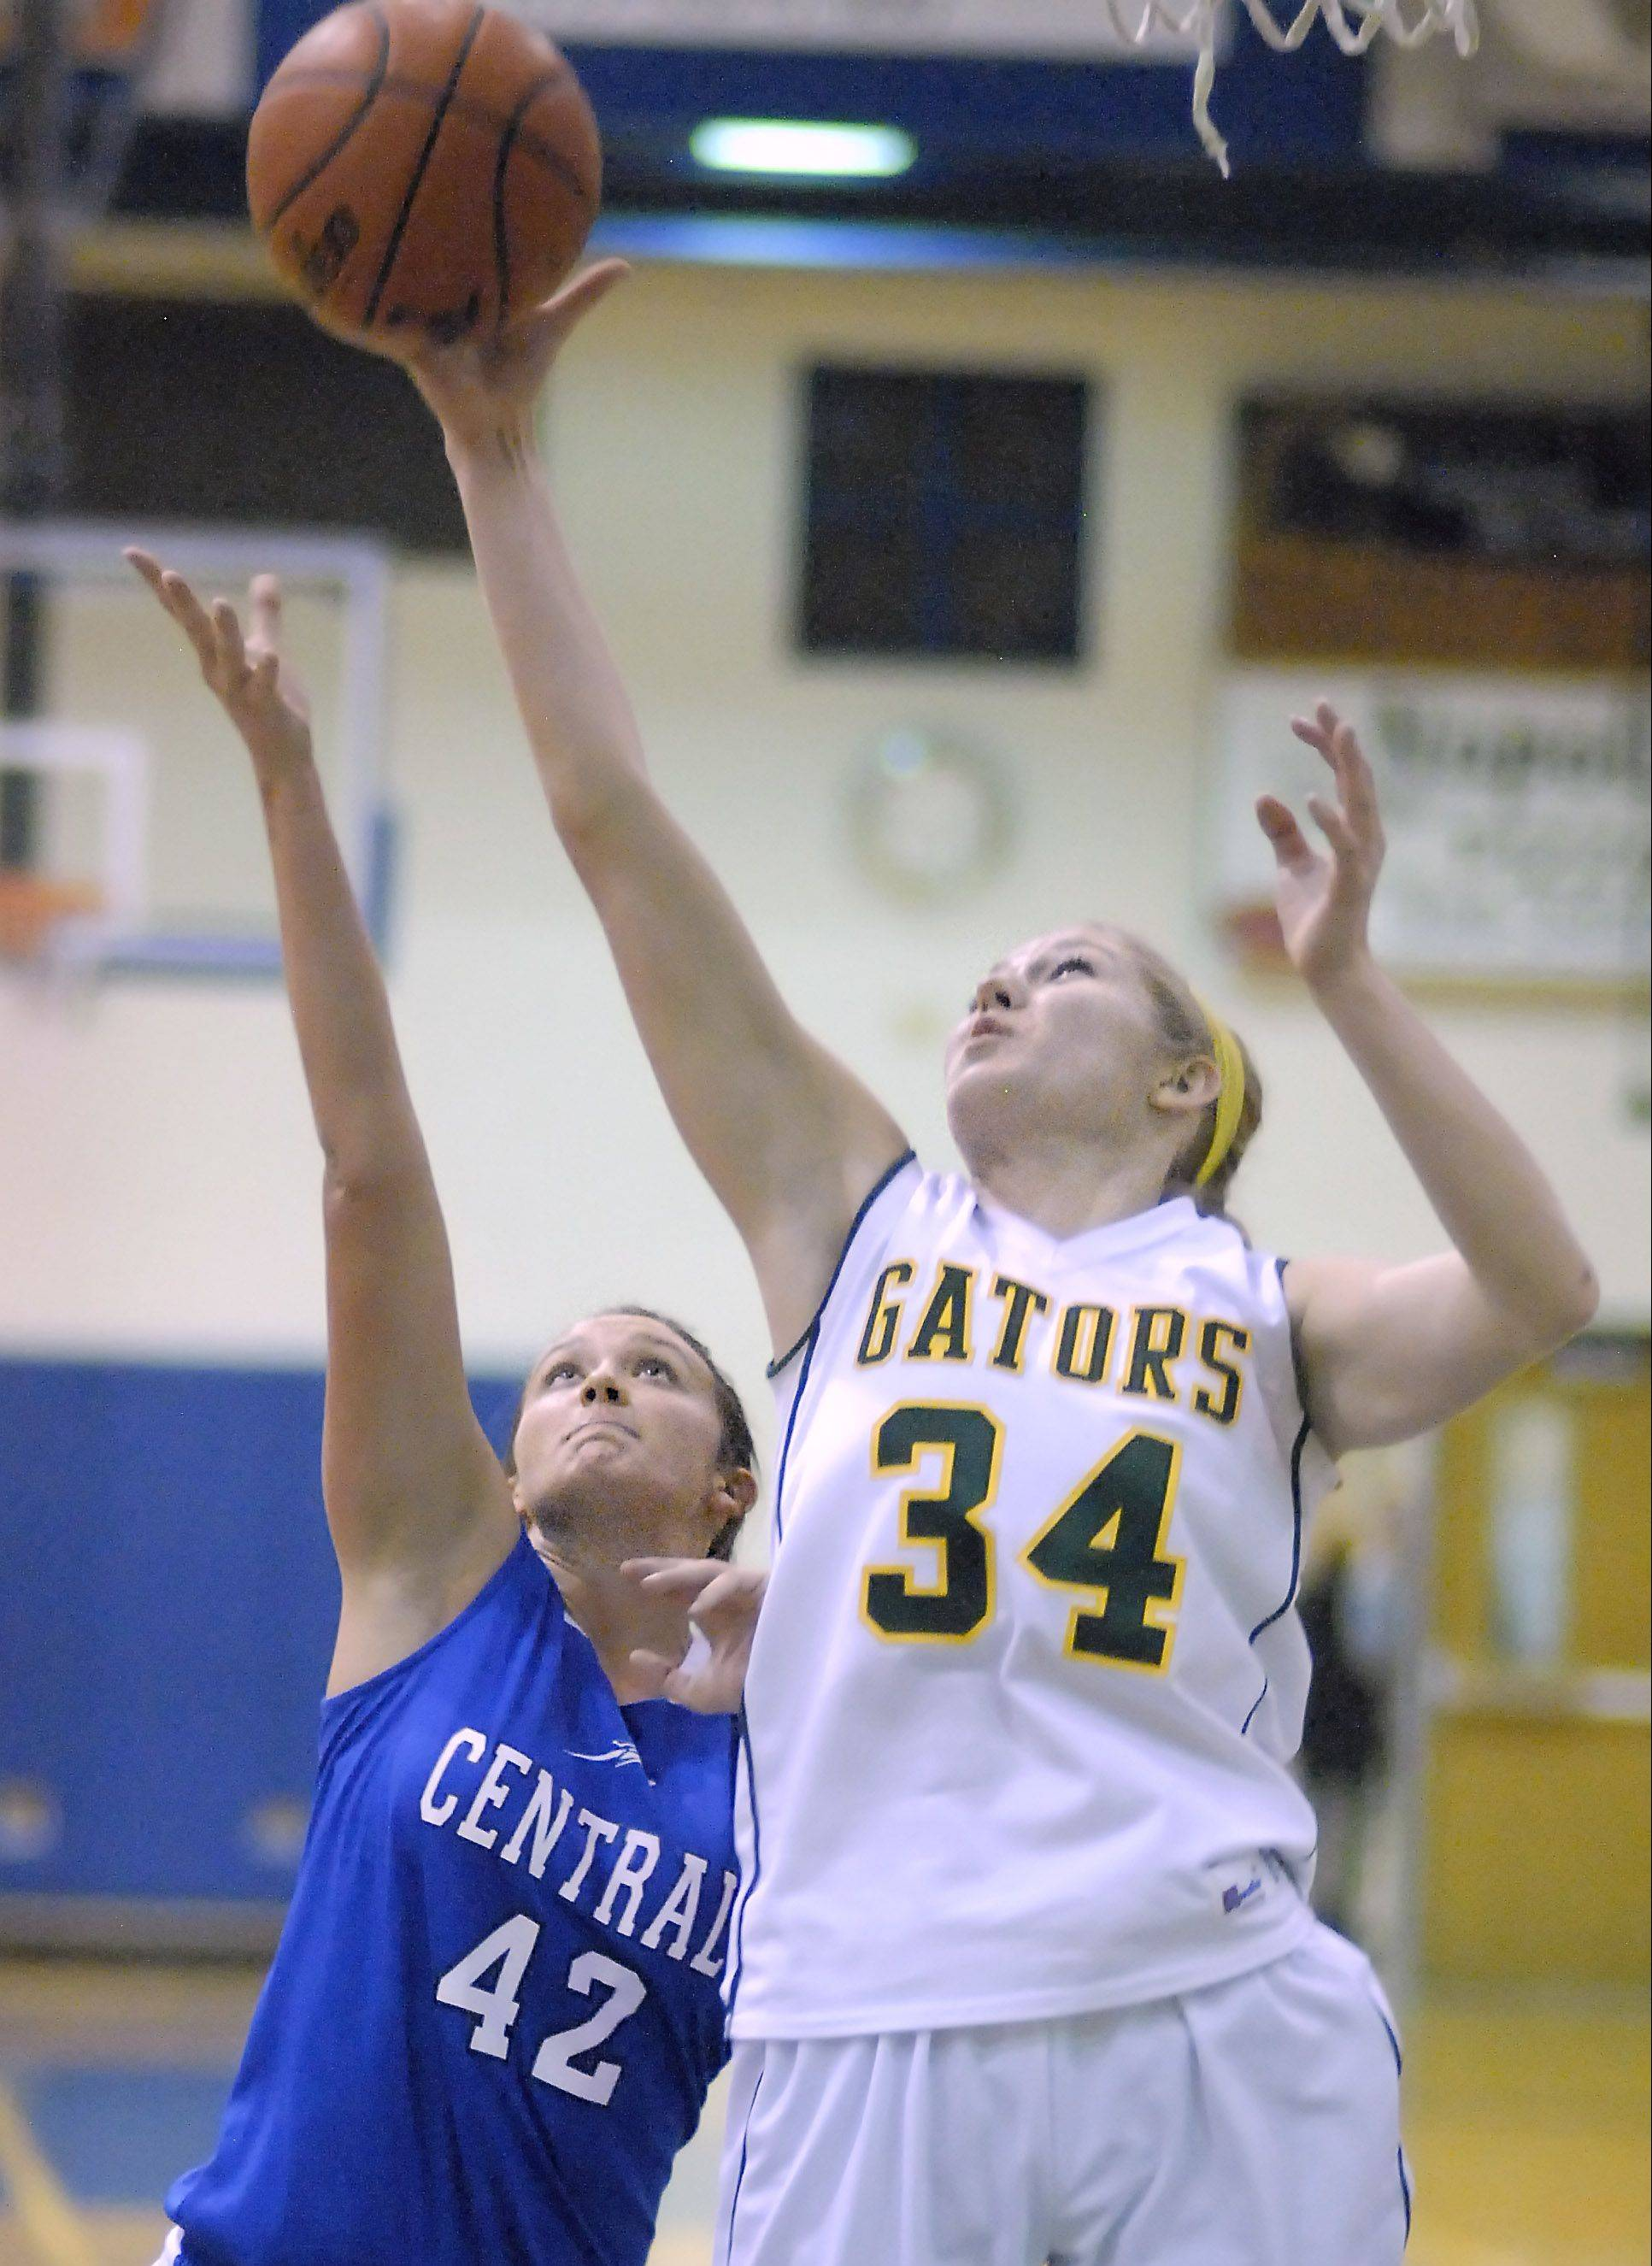 Crystal Lake S. toughs out win over Burlington C.